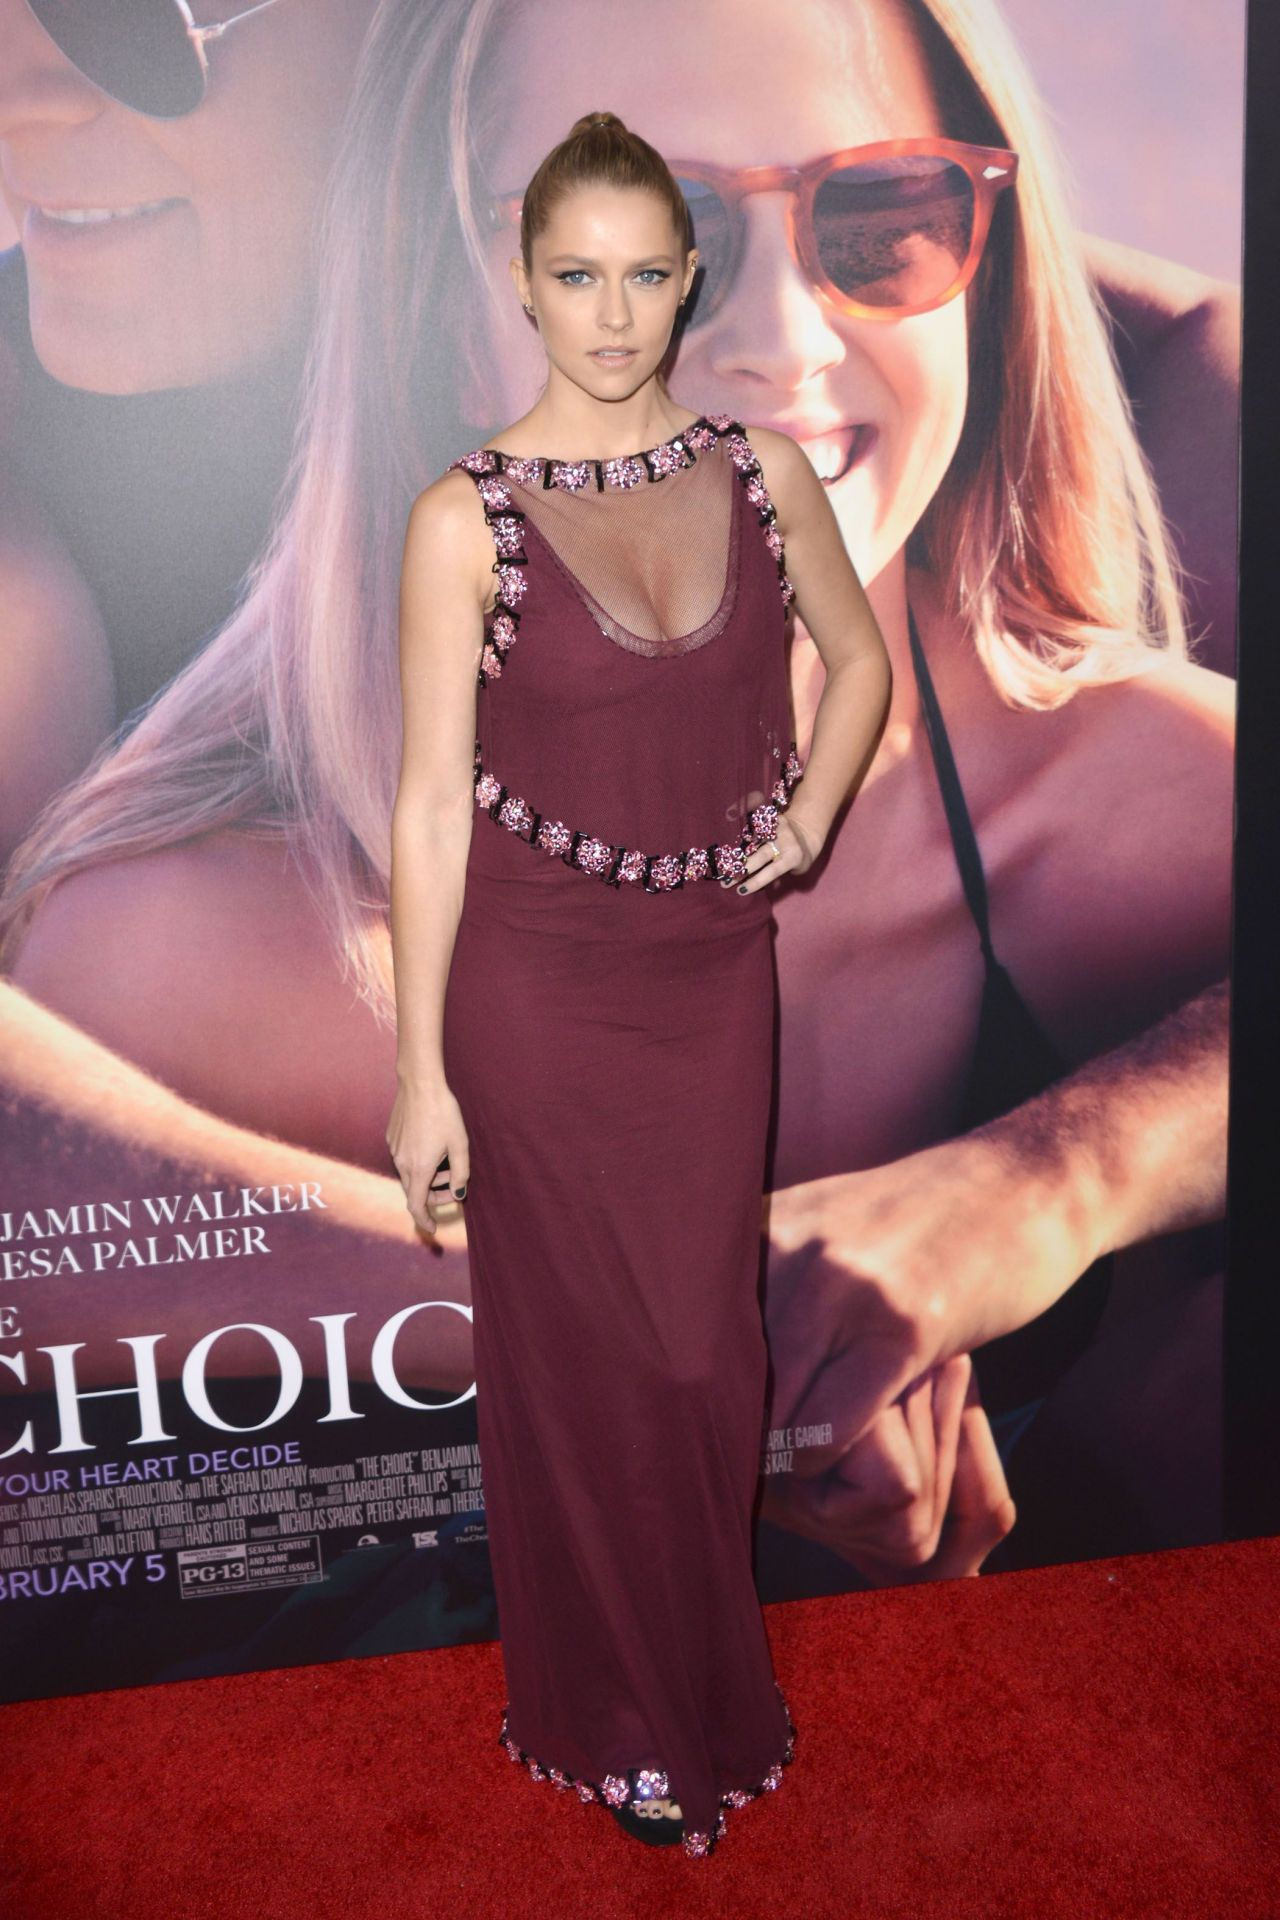 teresa-palmer-the-choice-premiere-in-hollywood-1